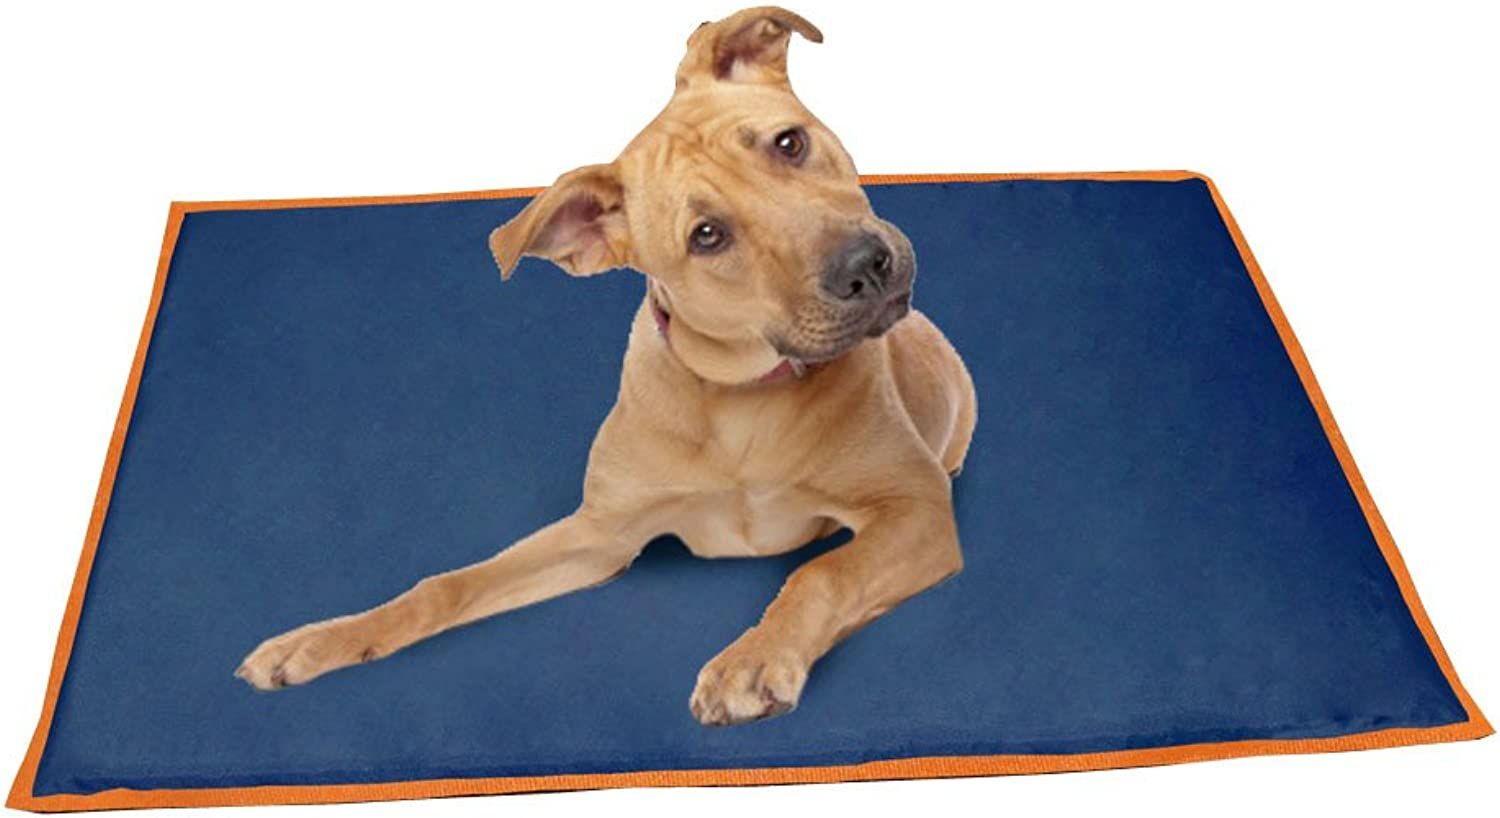 ABO Gear 24 by 42Inch Pet Cooling Bed, Large, Navy orange